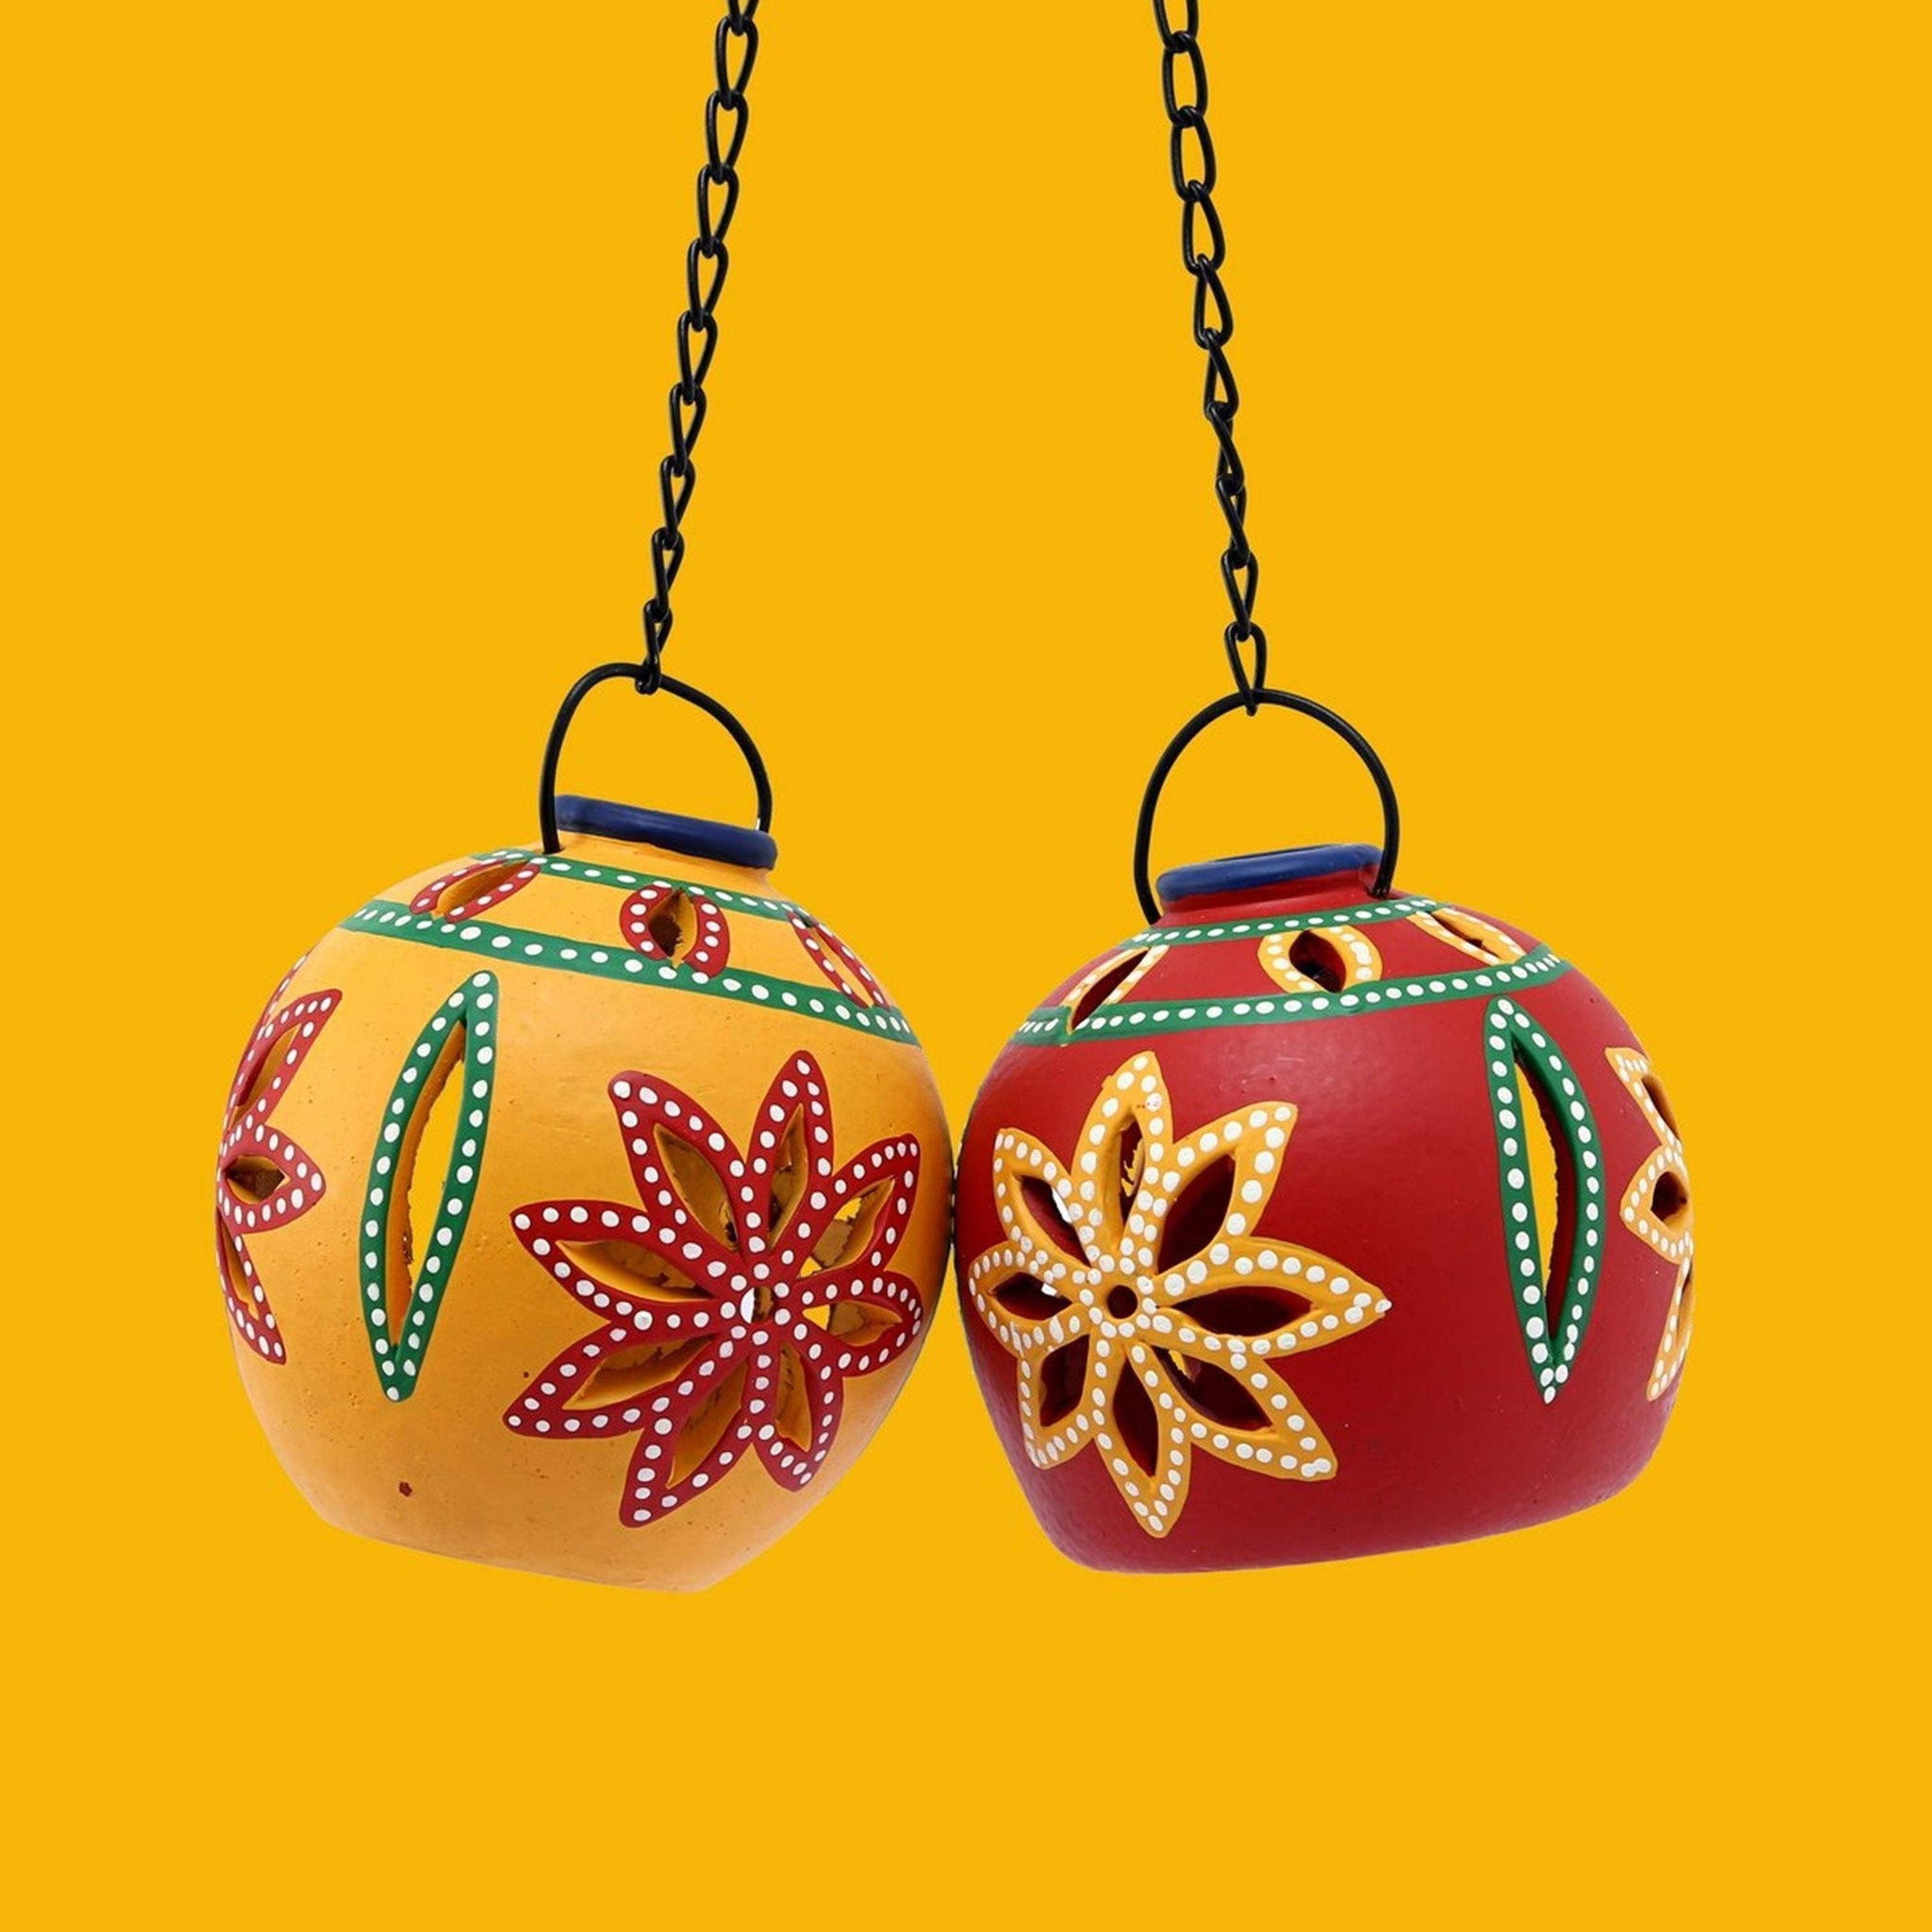 Decorative Red Yellow Pendant Tea Light Candle Holder Set of 2